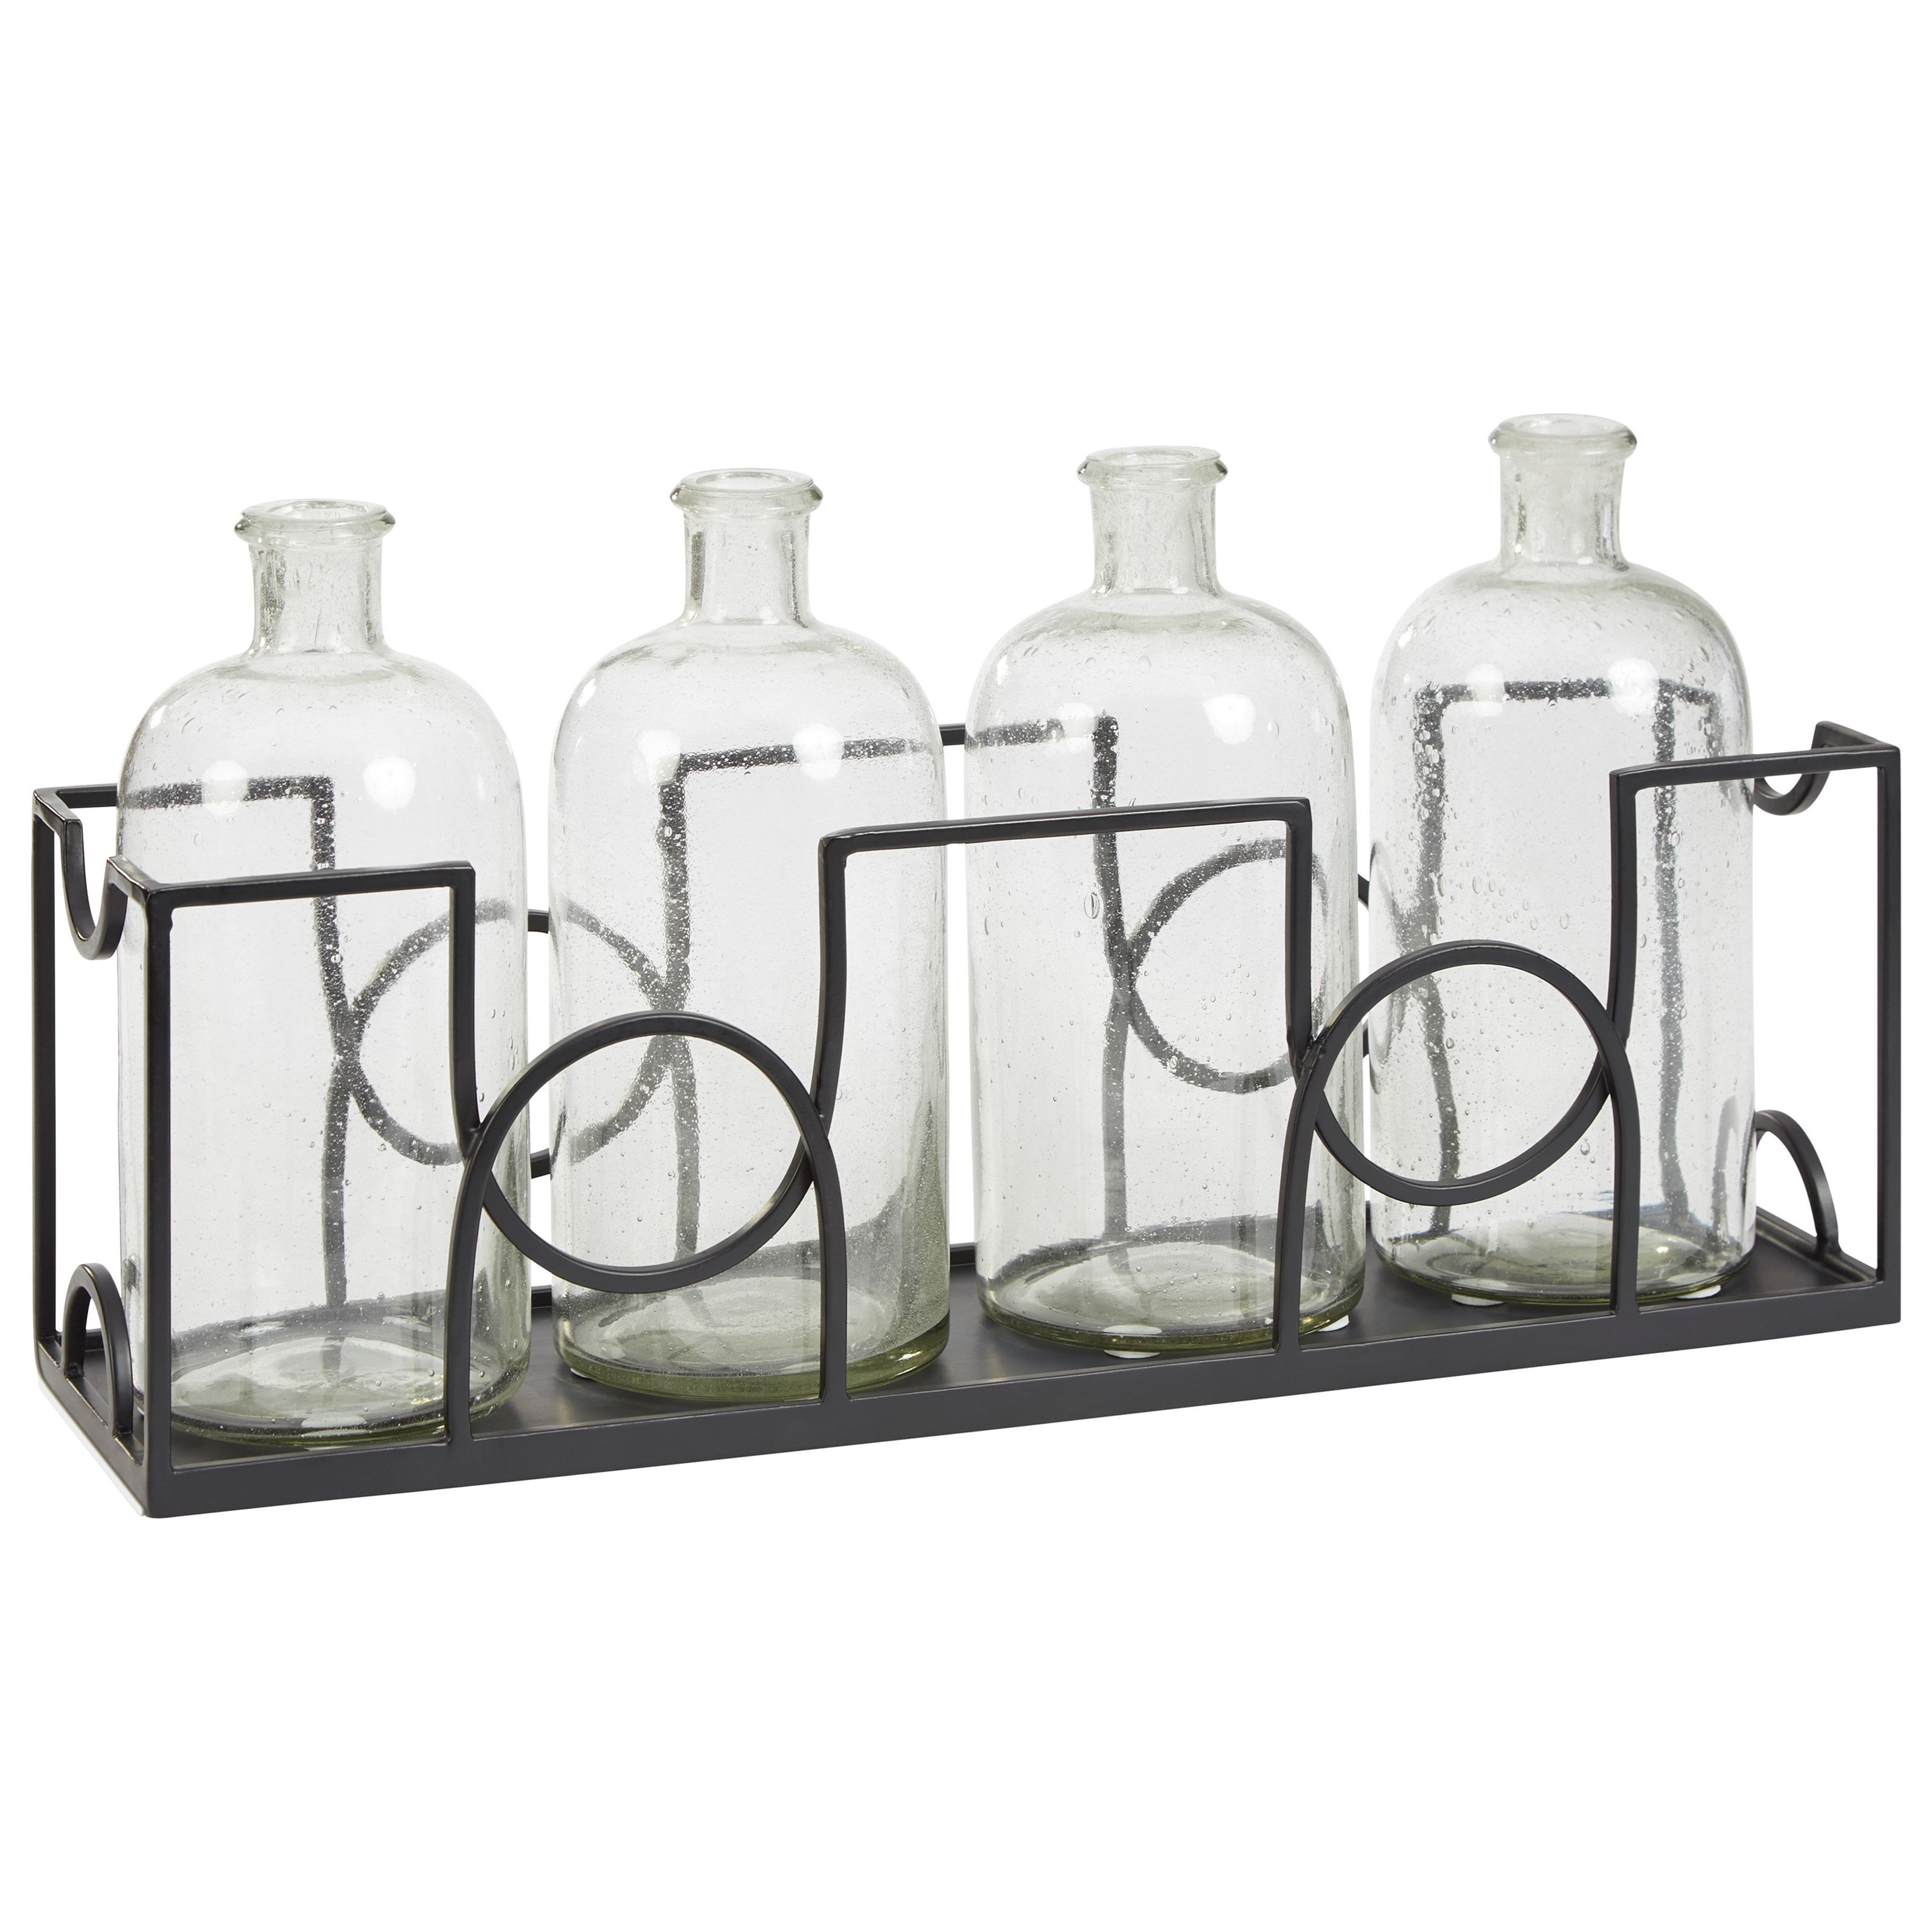 Accents Dmitri Clear/Black Accessory Set by Signature Design by Ashley at Catalog Outlet